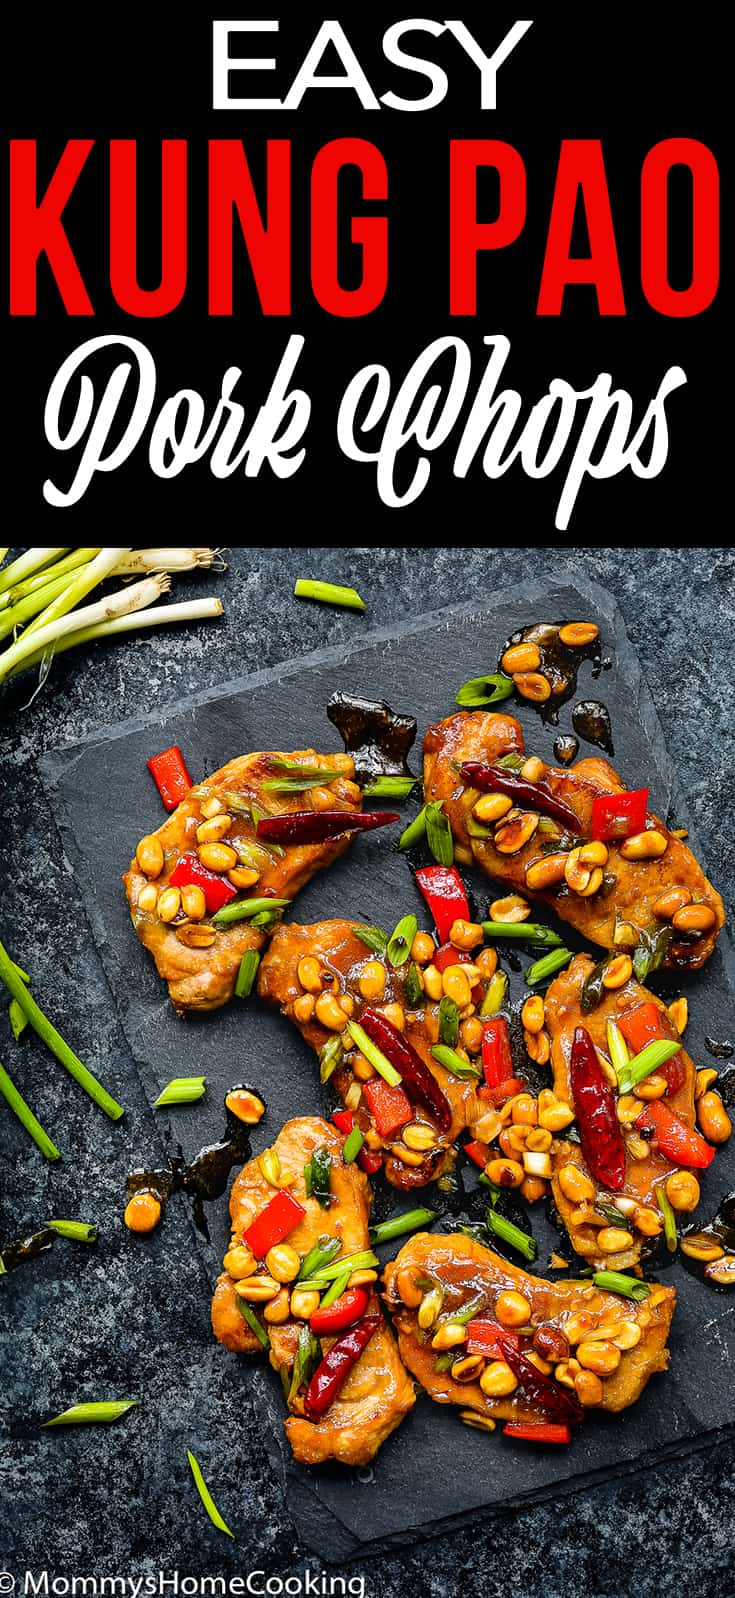 Easy Kung Pao Pork Chops over a black serving plate with descriptive text